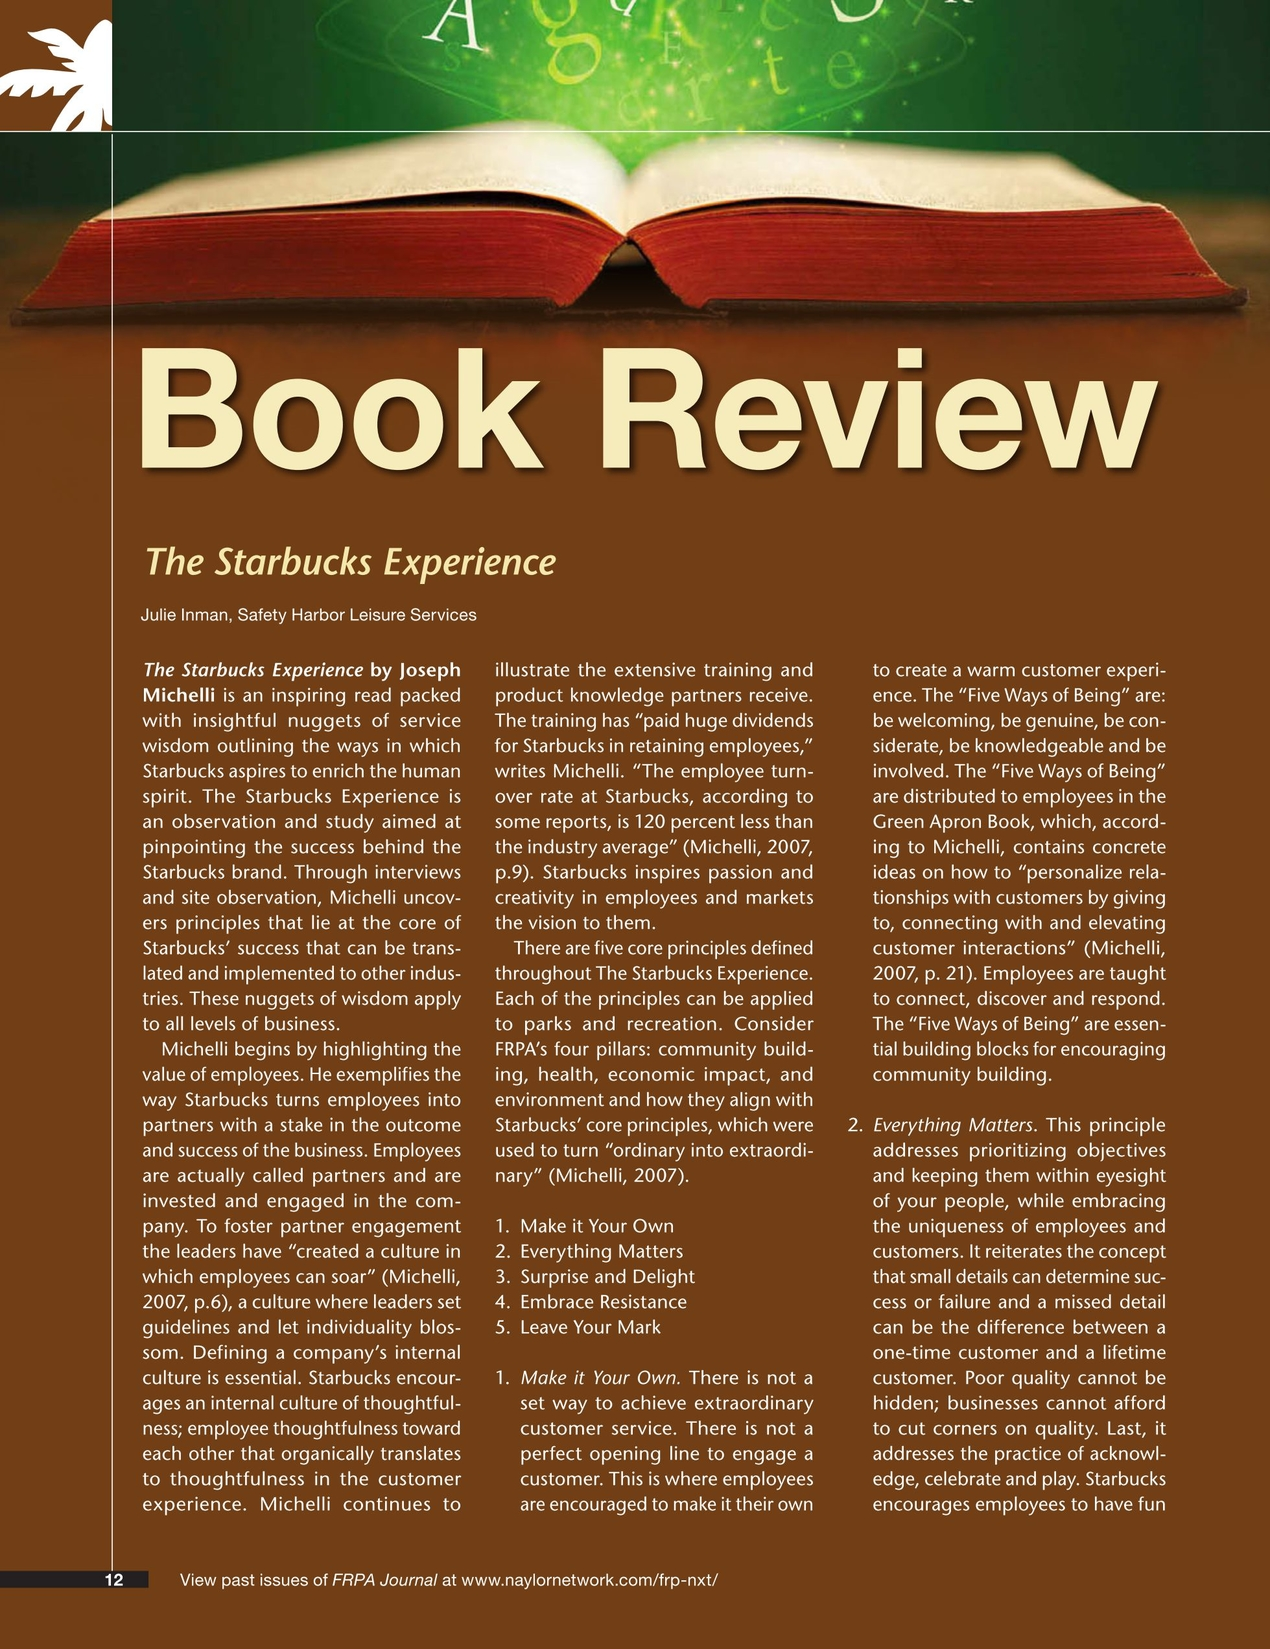 Book review for starbucks experience